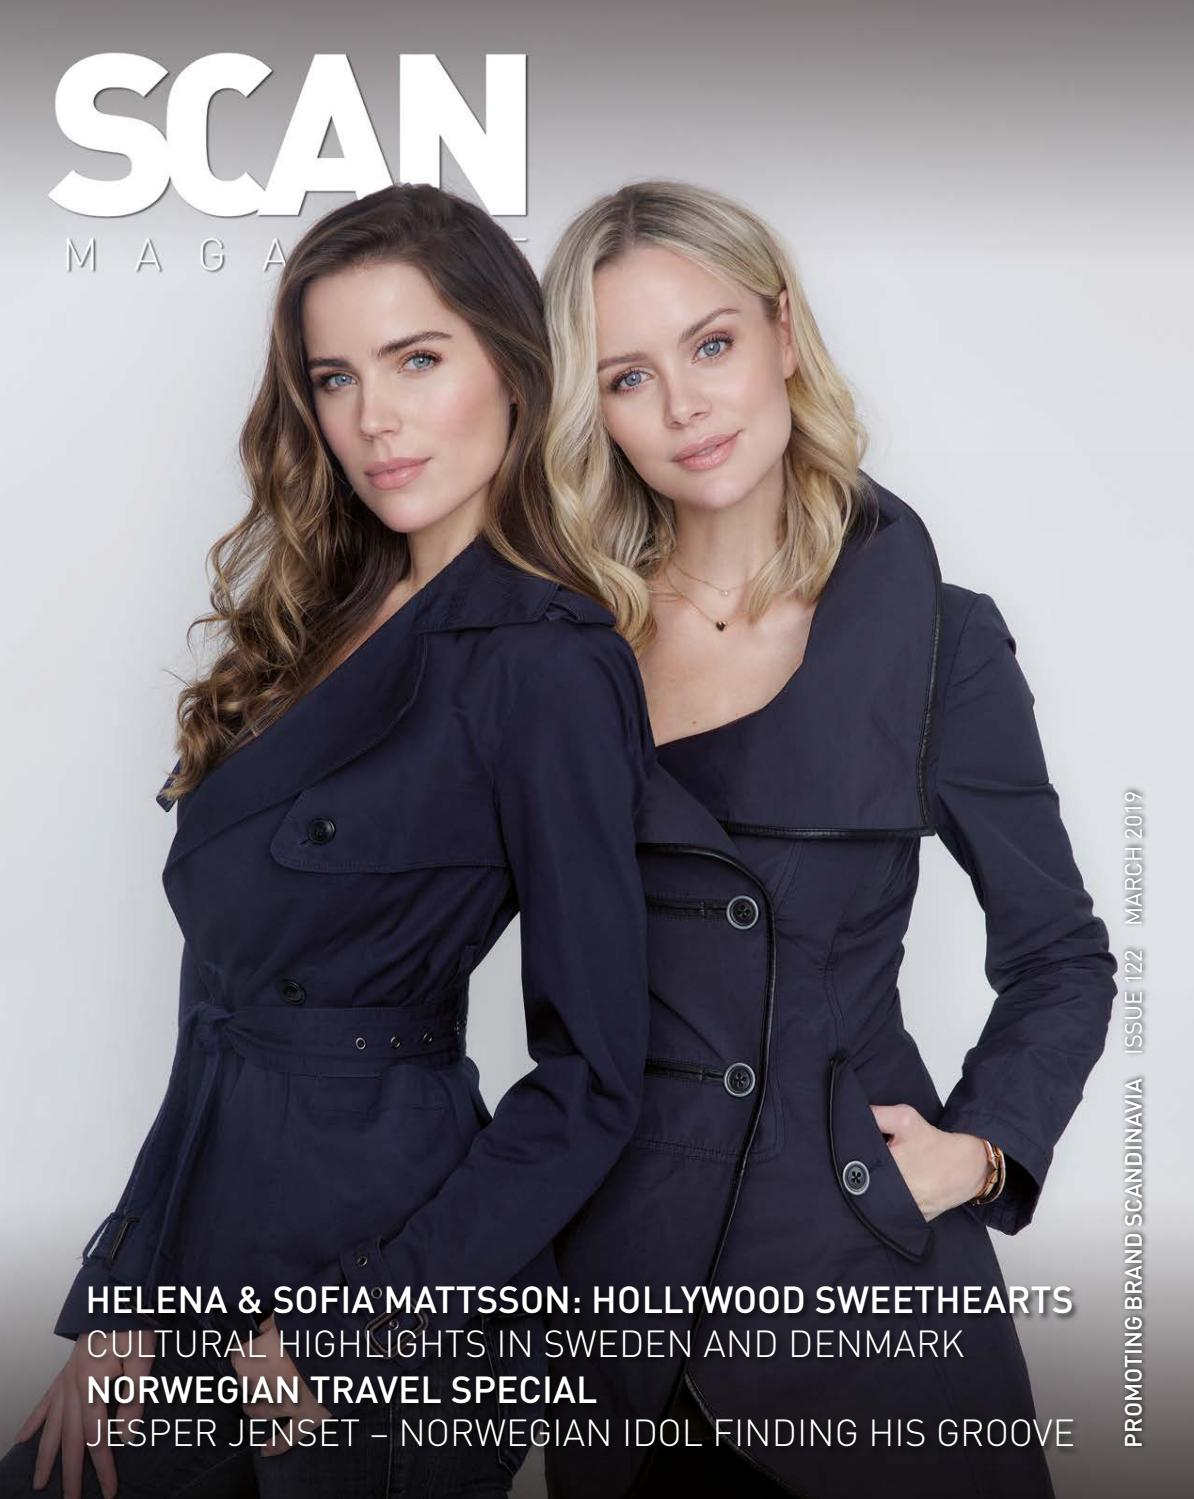 c7010574 Scan Magazine, Issue 122, March 2019 by Scan Group - issuu